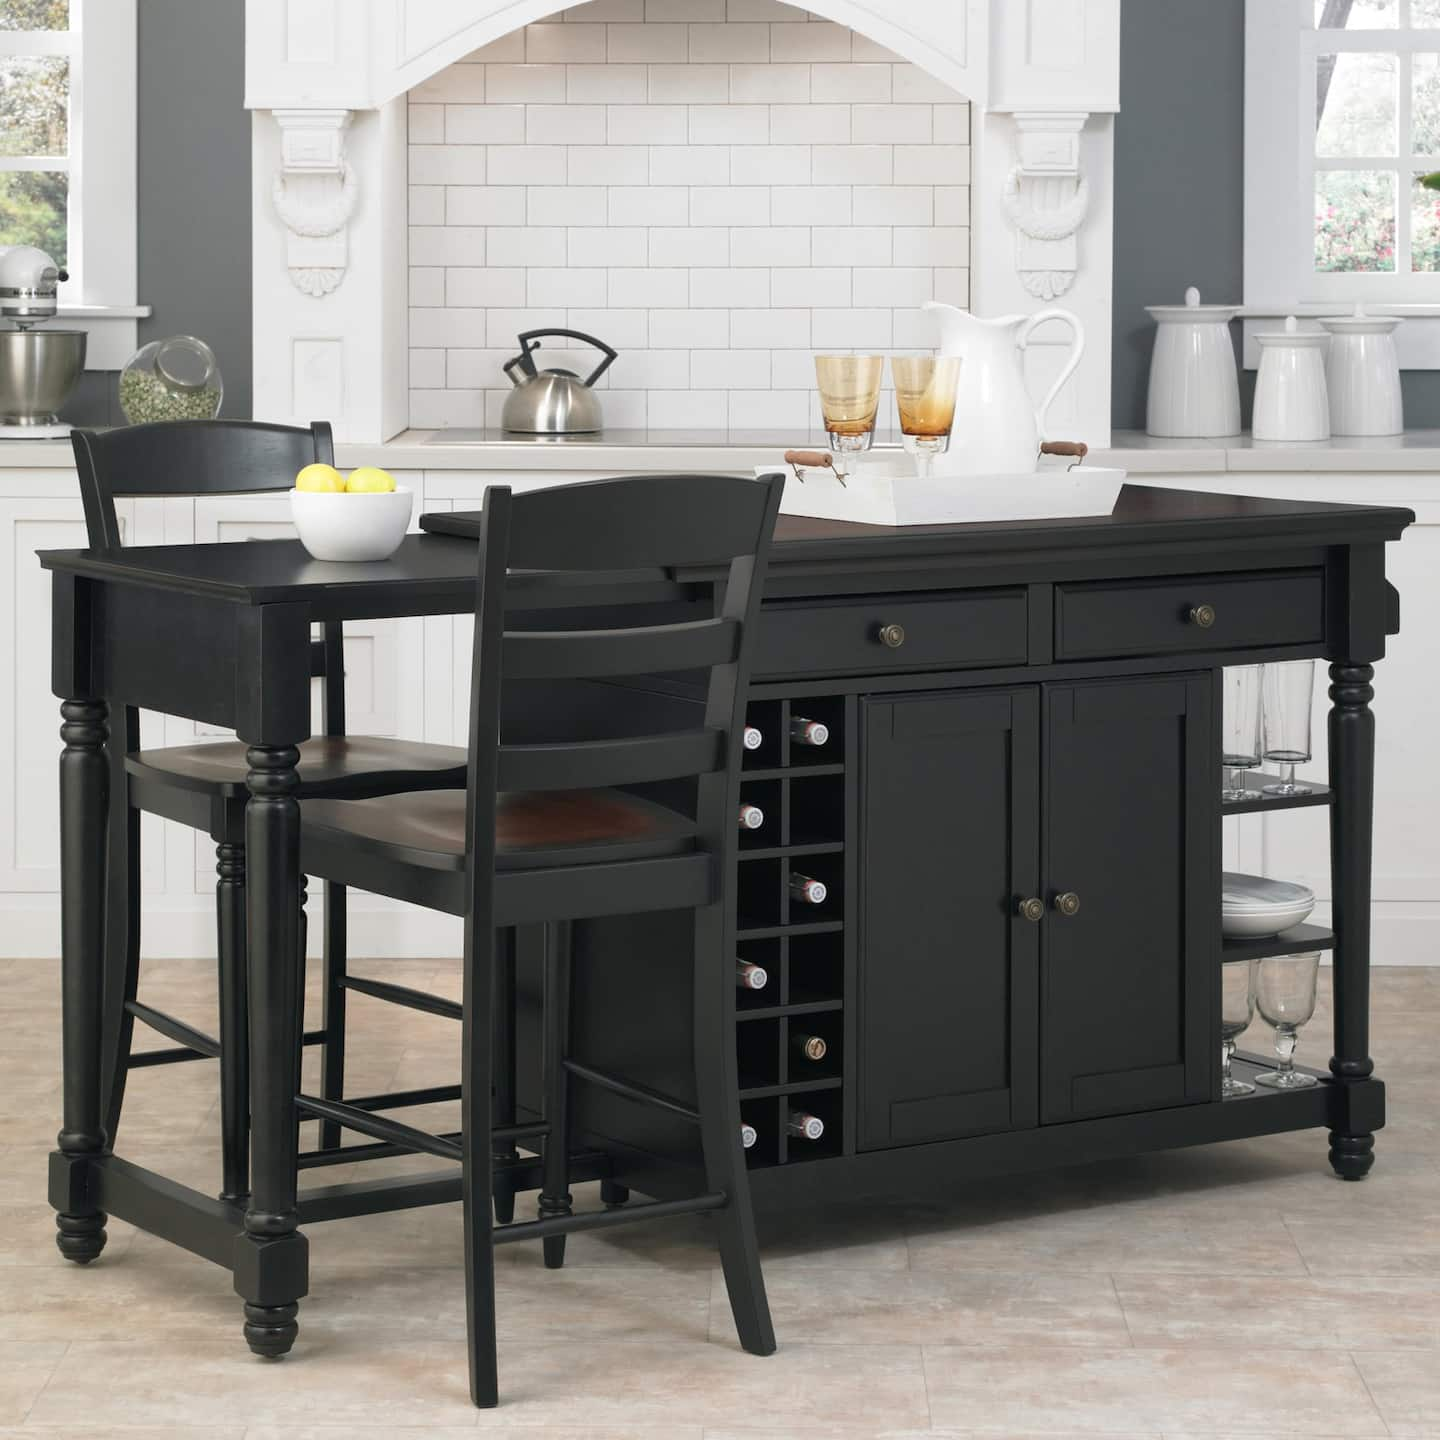 Black, Full Service Moveable Kitchen Island Bar